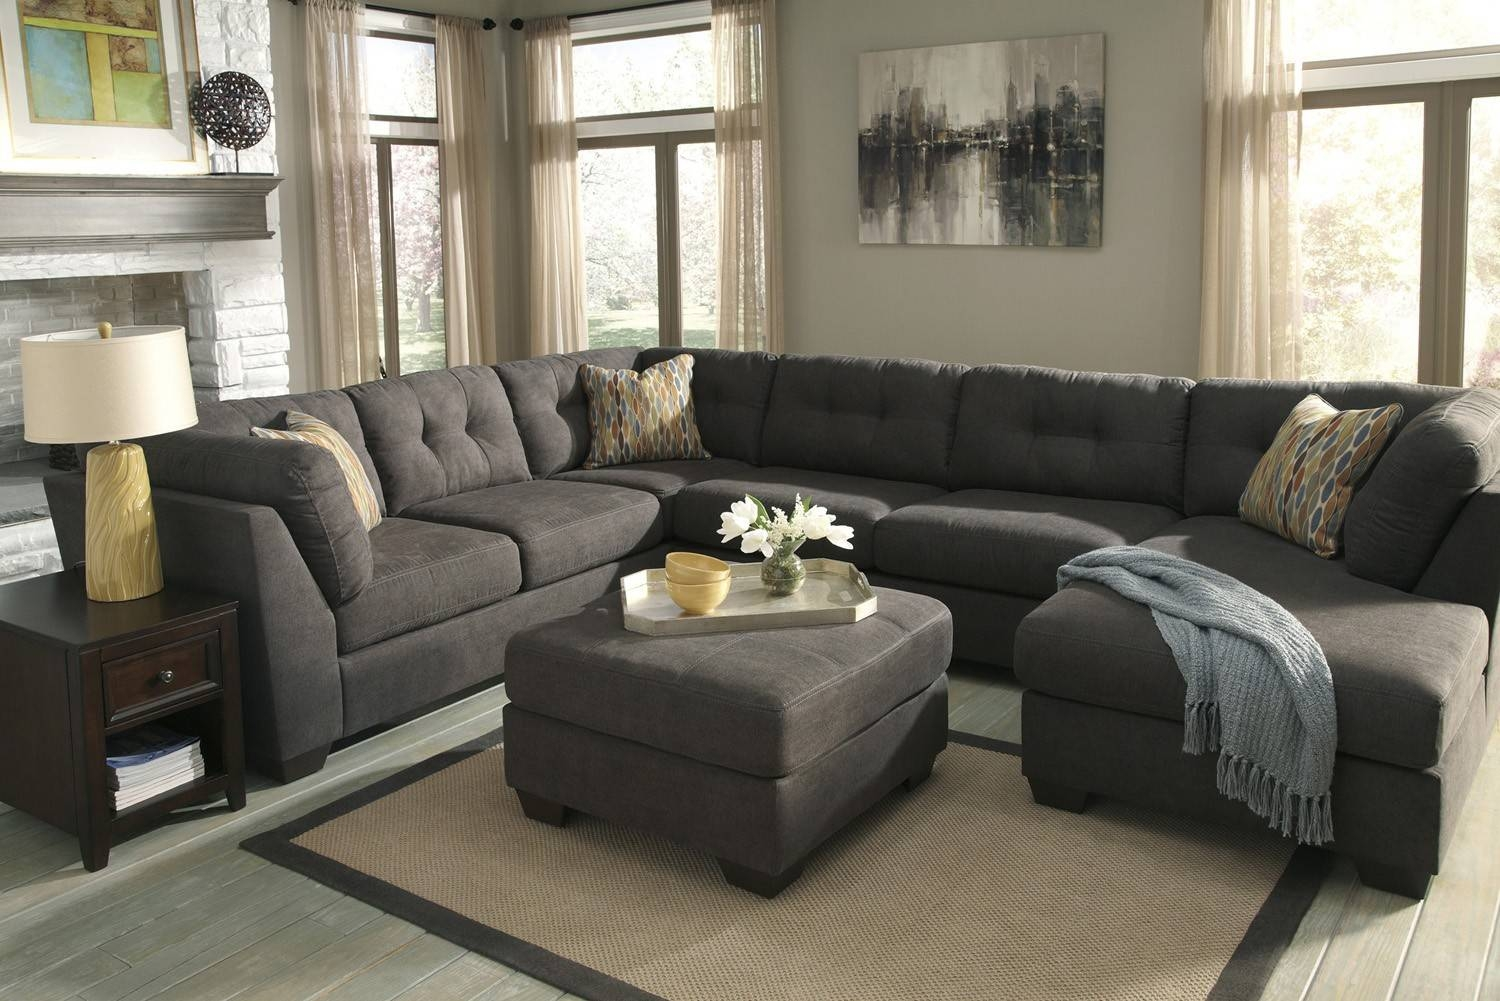 Delta City Steel 3-Piece Sectional Sofa With Left Arm Facing inside 3 Piece Sectional Sleeper Sofa (Image 13 of 30)